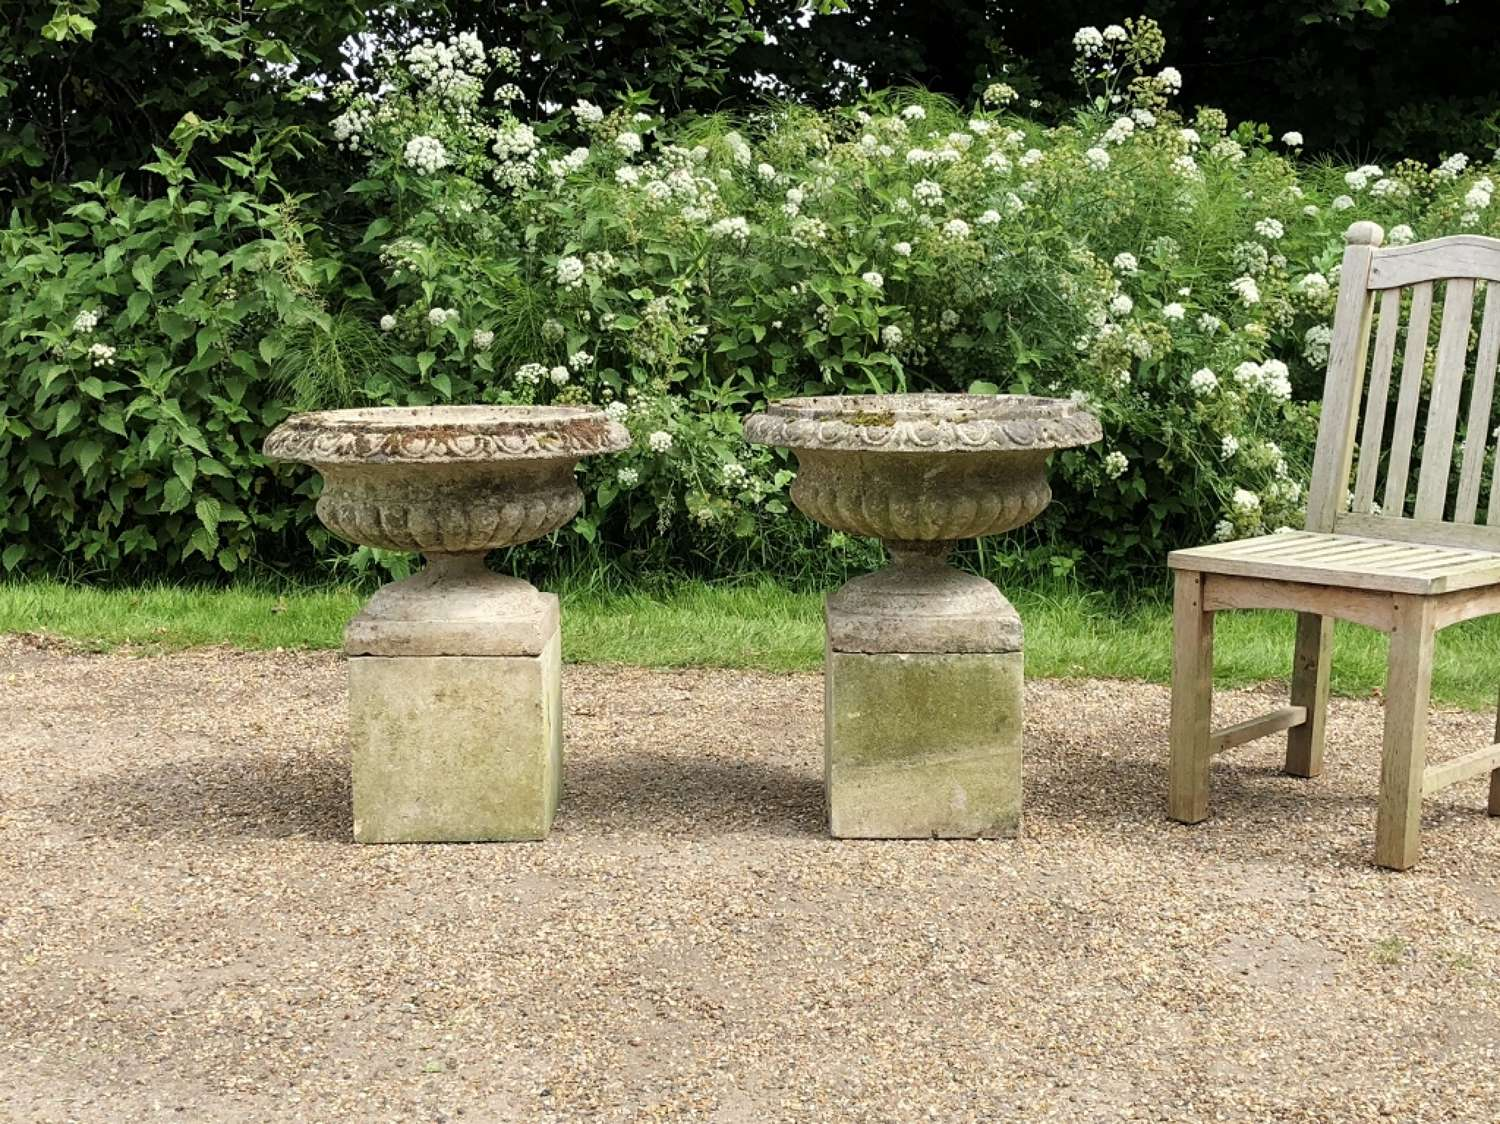 Pair of Urns on Low Pedestals